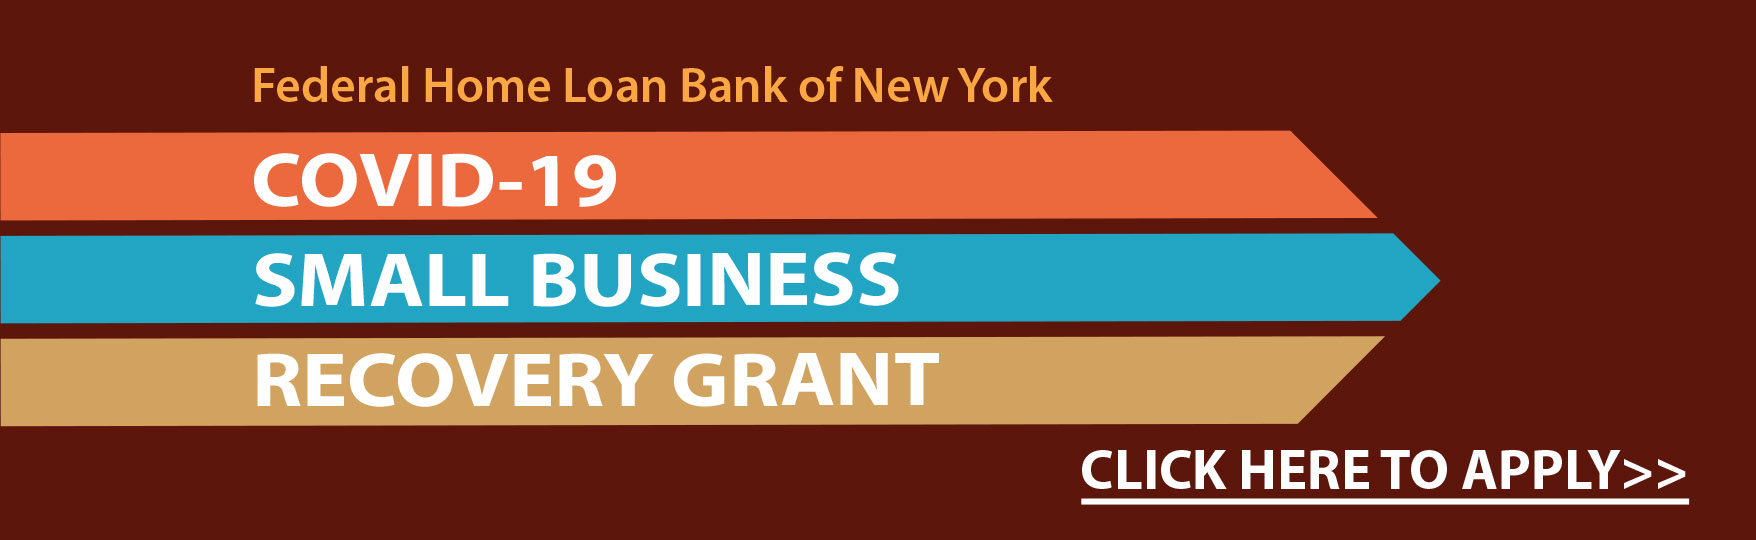 Federal Home Loan Bank of New York  Covid-19 Small Business Recovery Grant Click here to apply